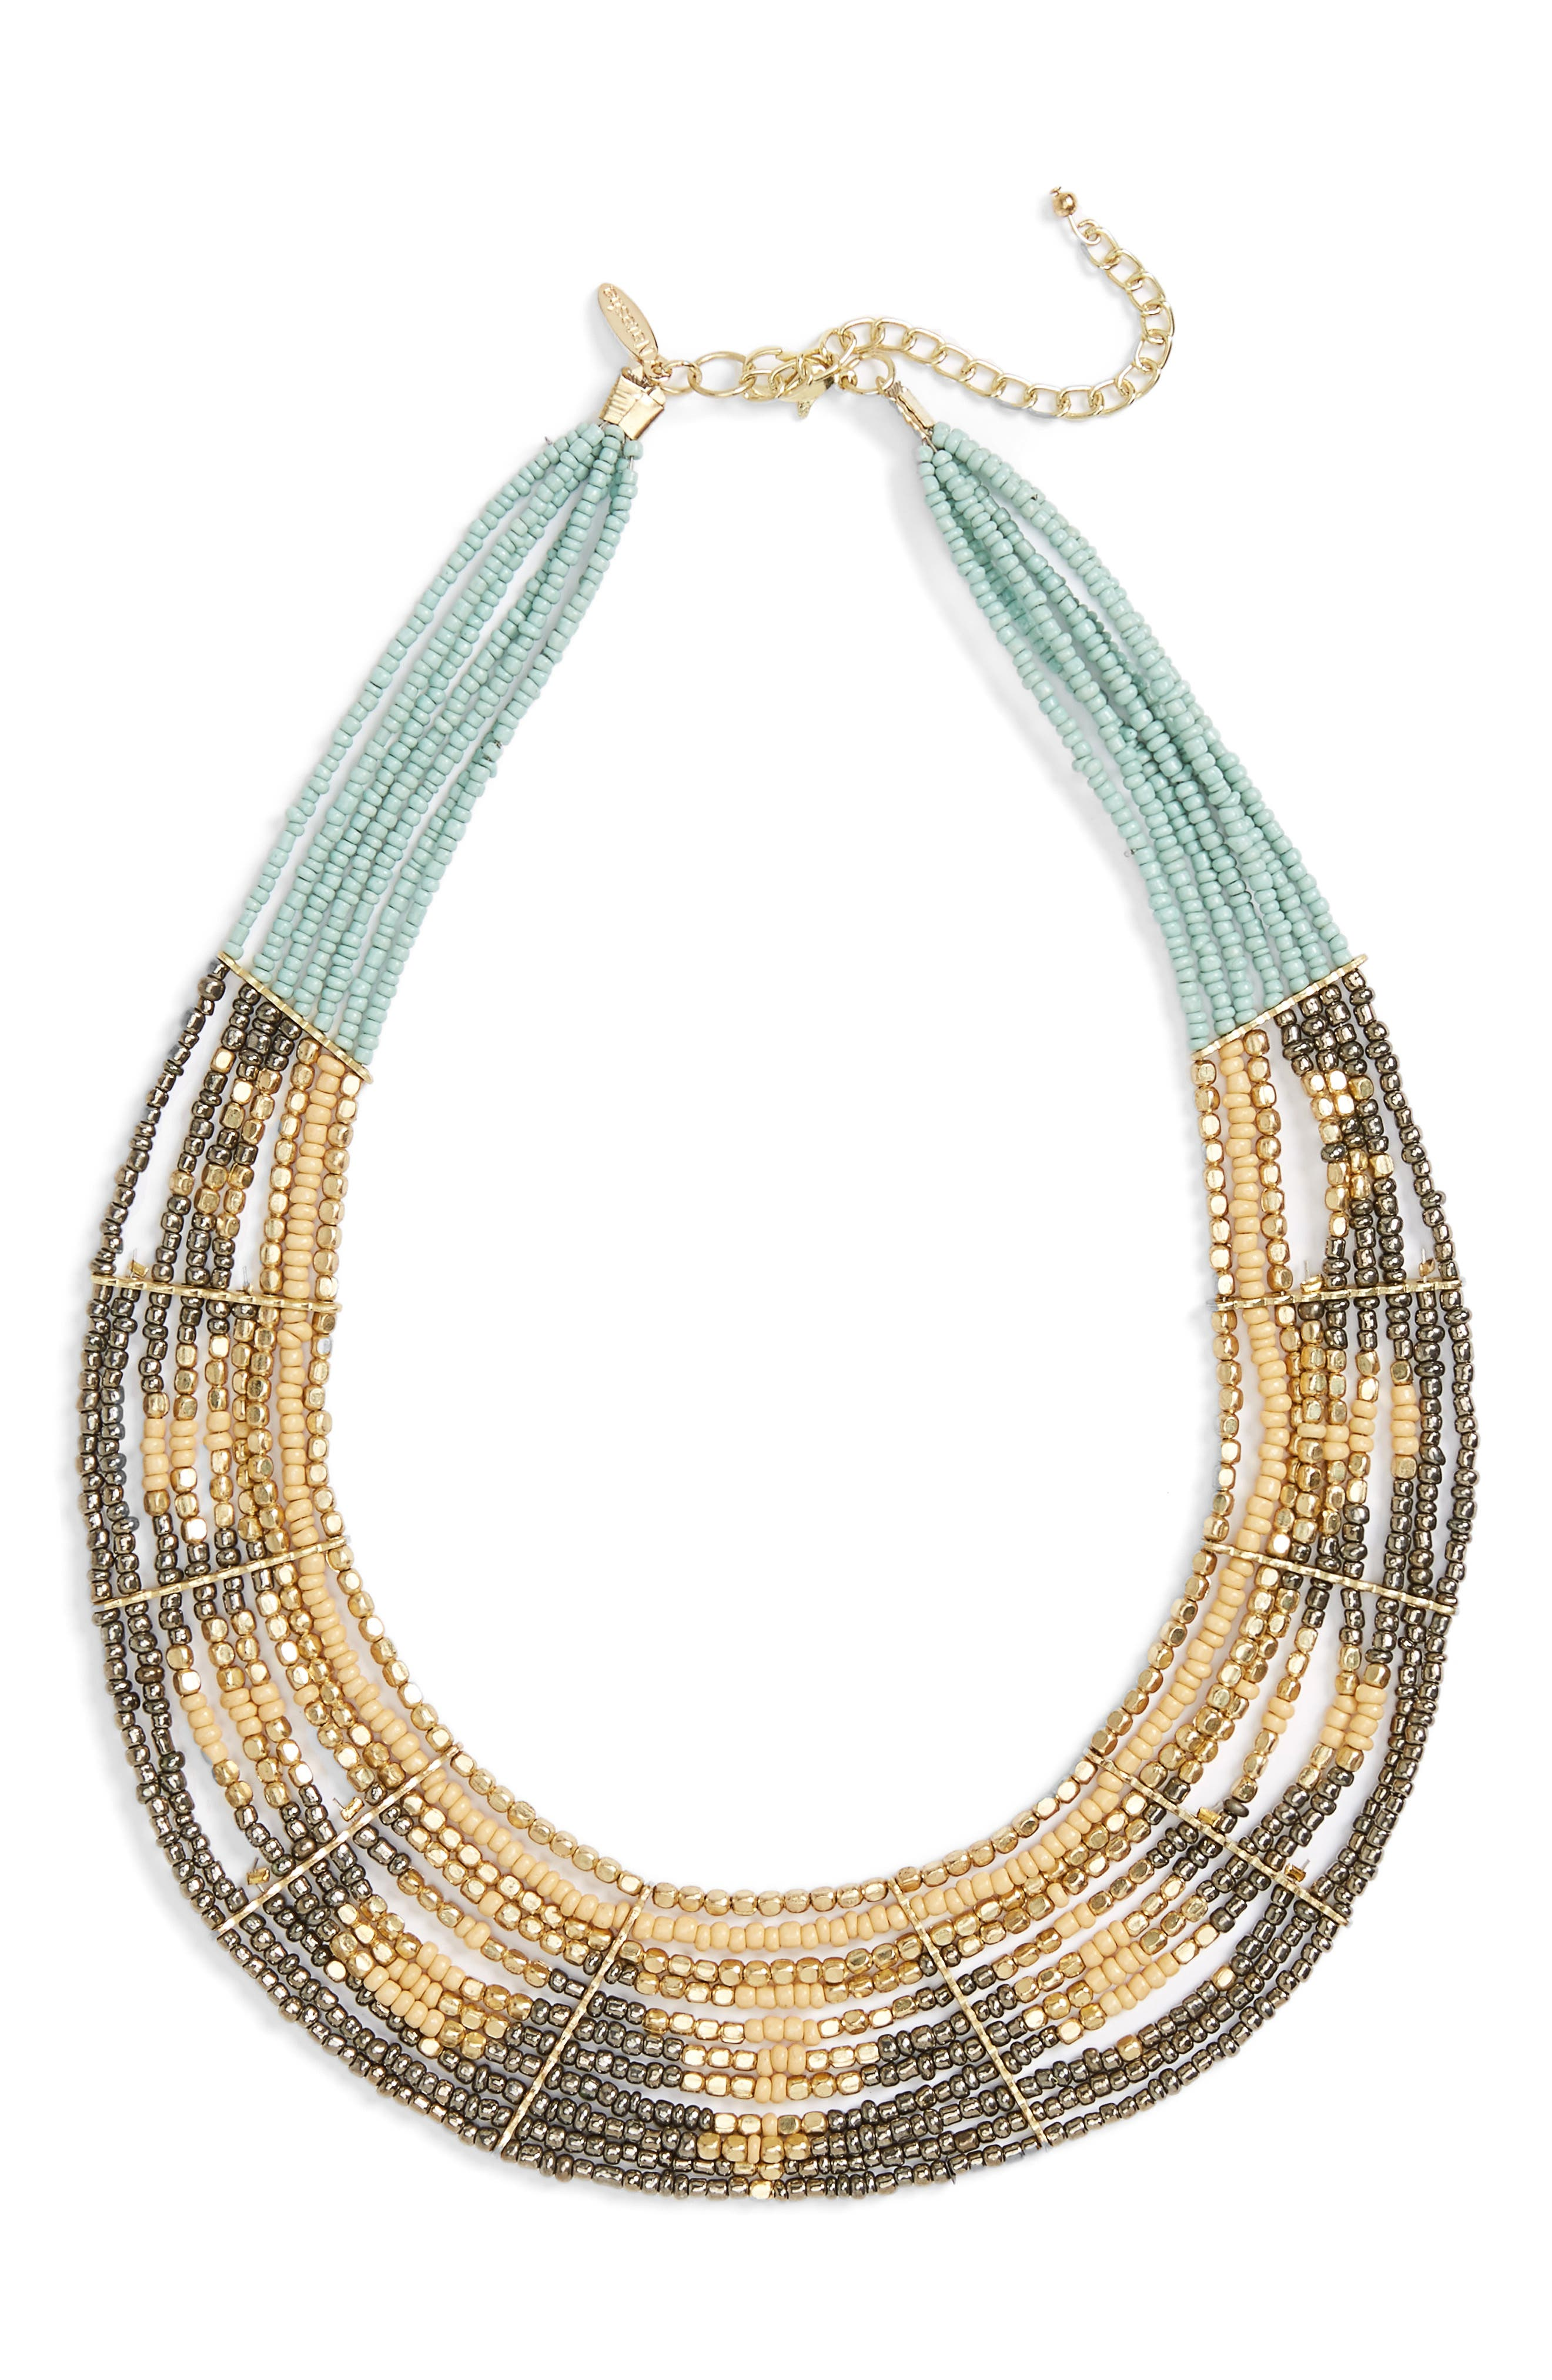 Natasha Beaded Statement Necklace